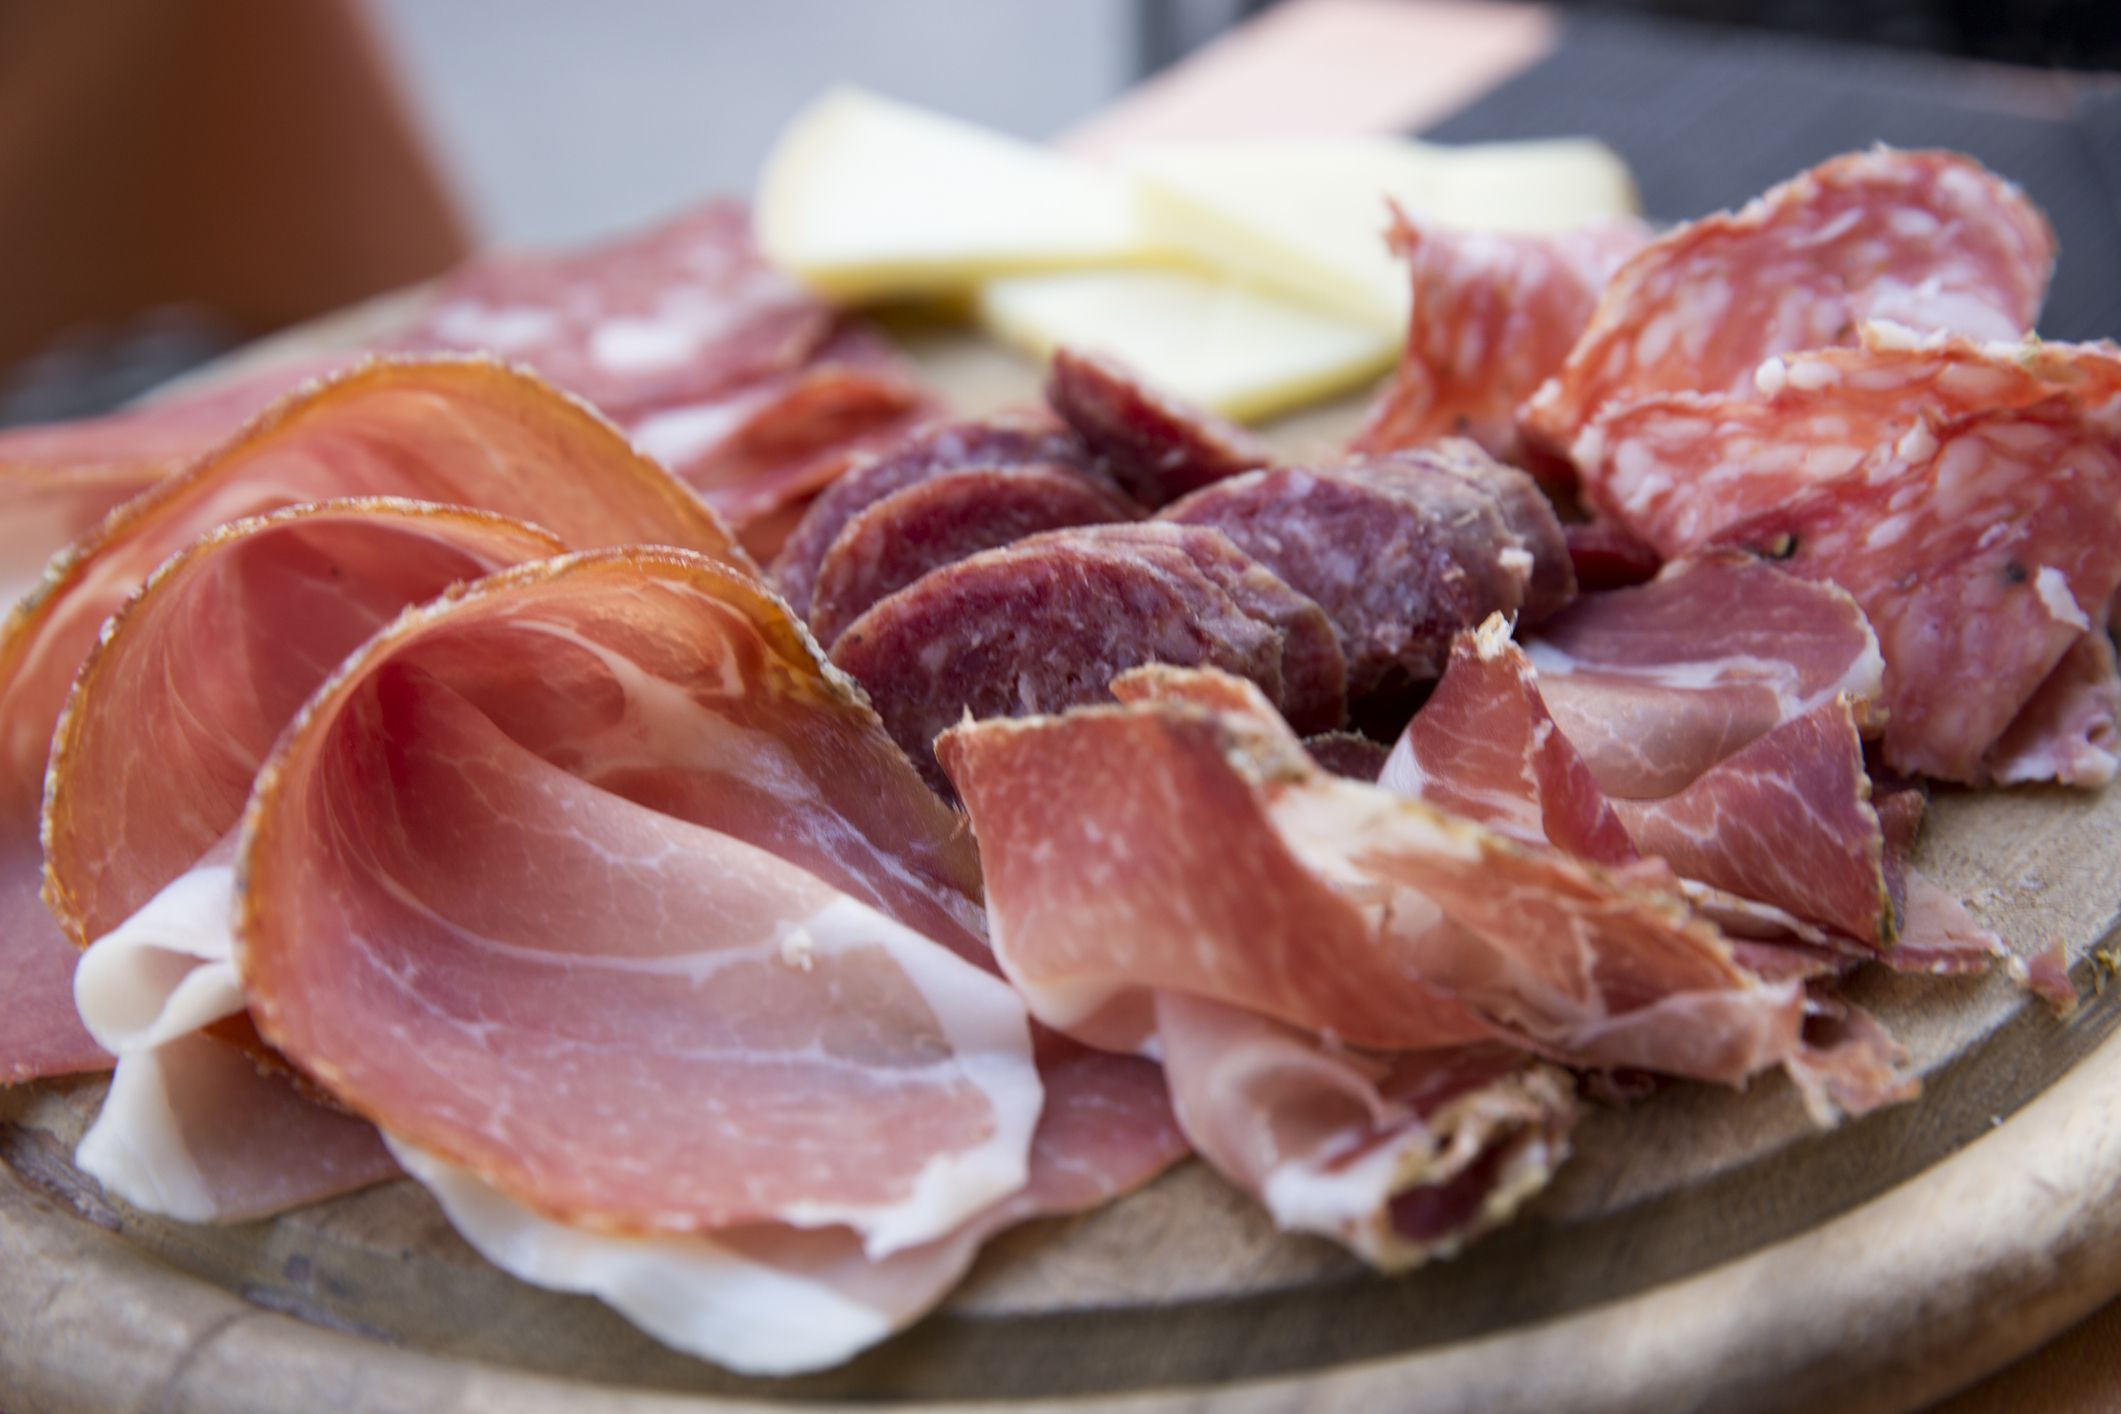 How To Make Tuscan Style Prosciutto At Home Recipe Prosciutto Cured Meats Prosciutto Recipes